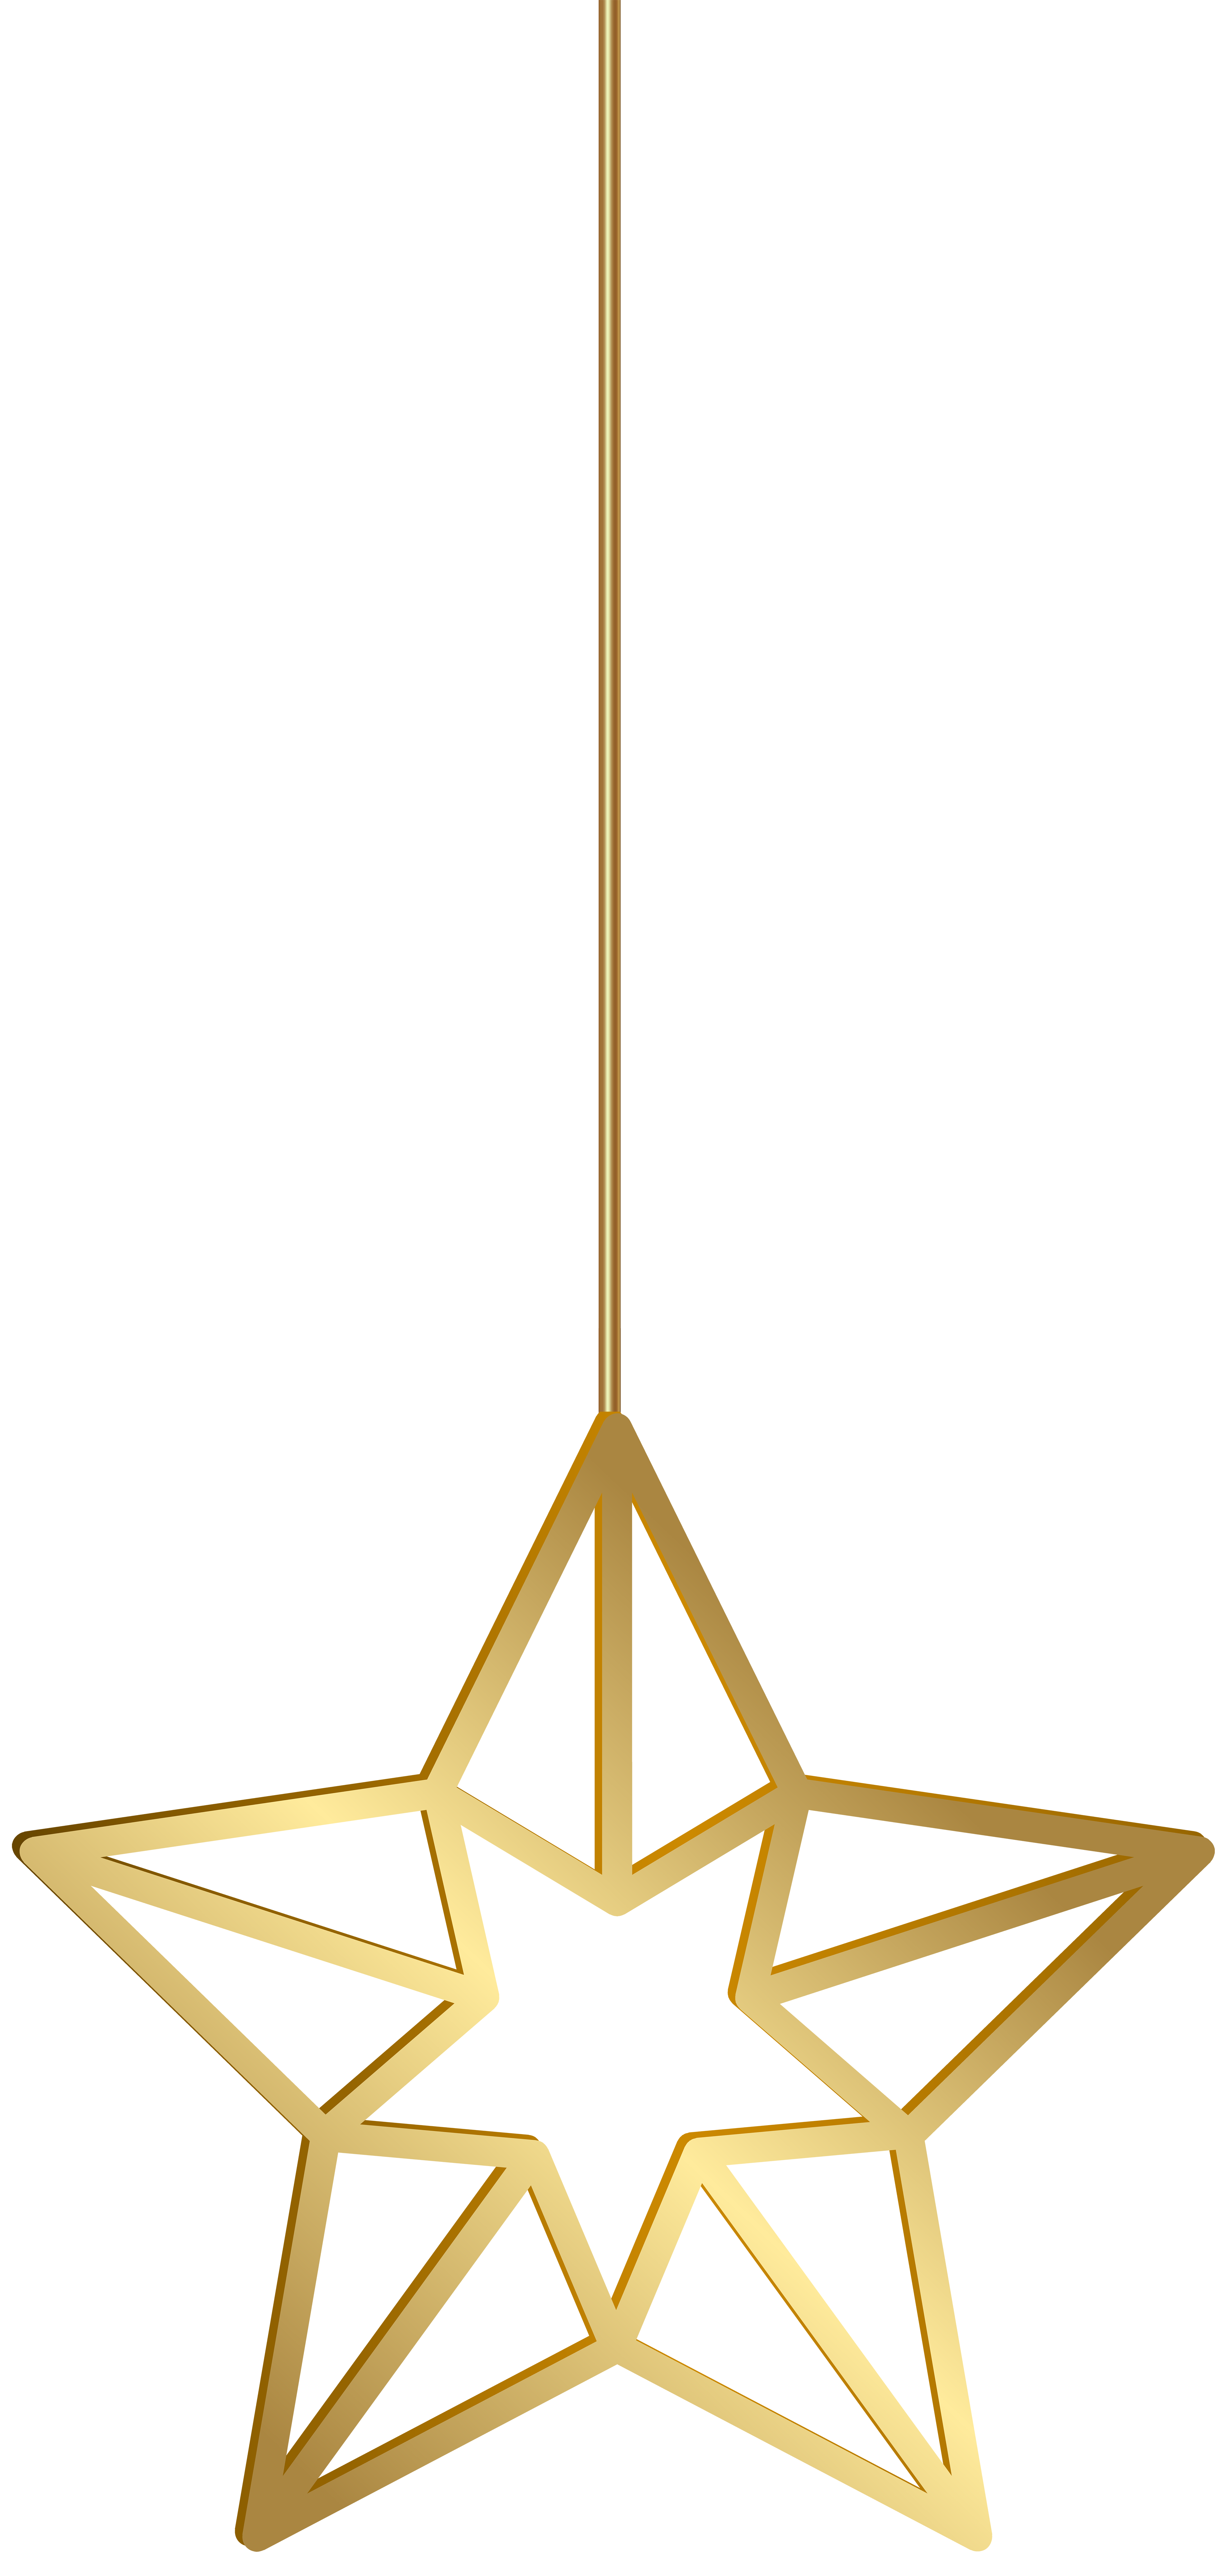 Hanging star clipart picture royalty free download Hanging Star Gold Transparent PNG Clip Art | Gallery Yopriceville ... picture royalty free download